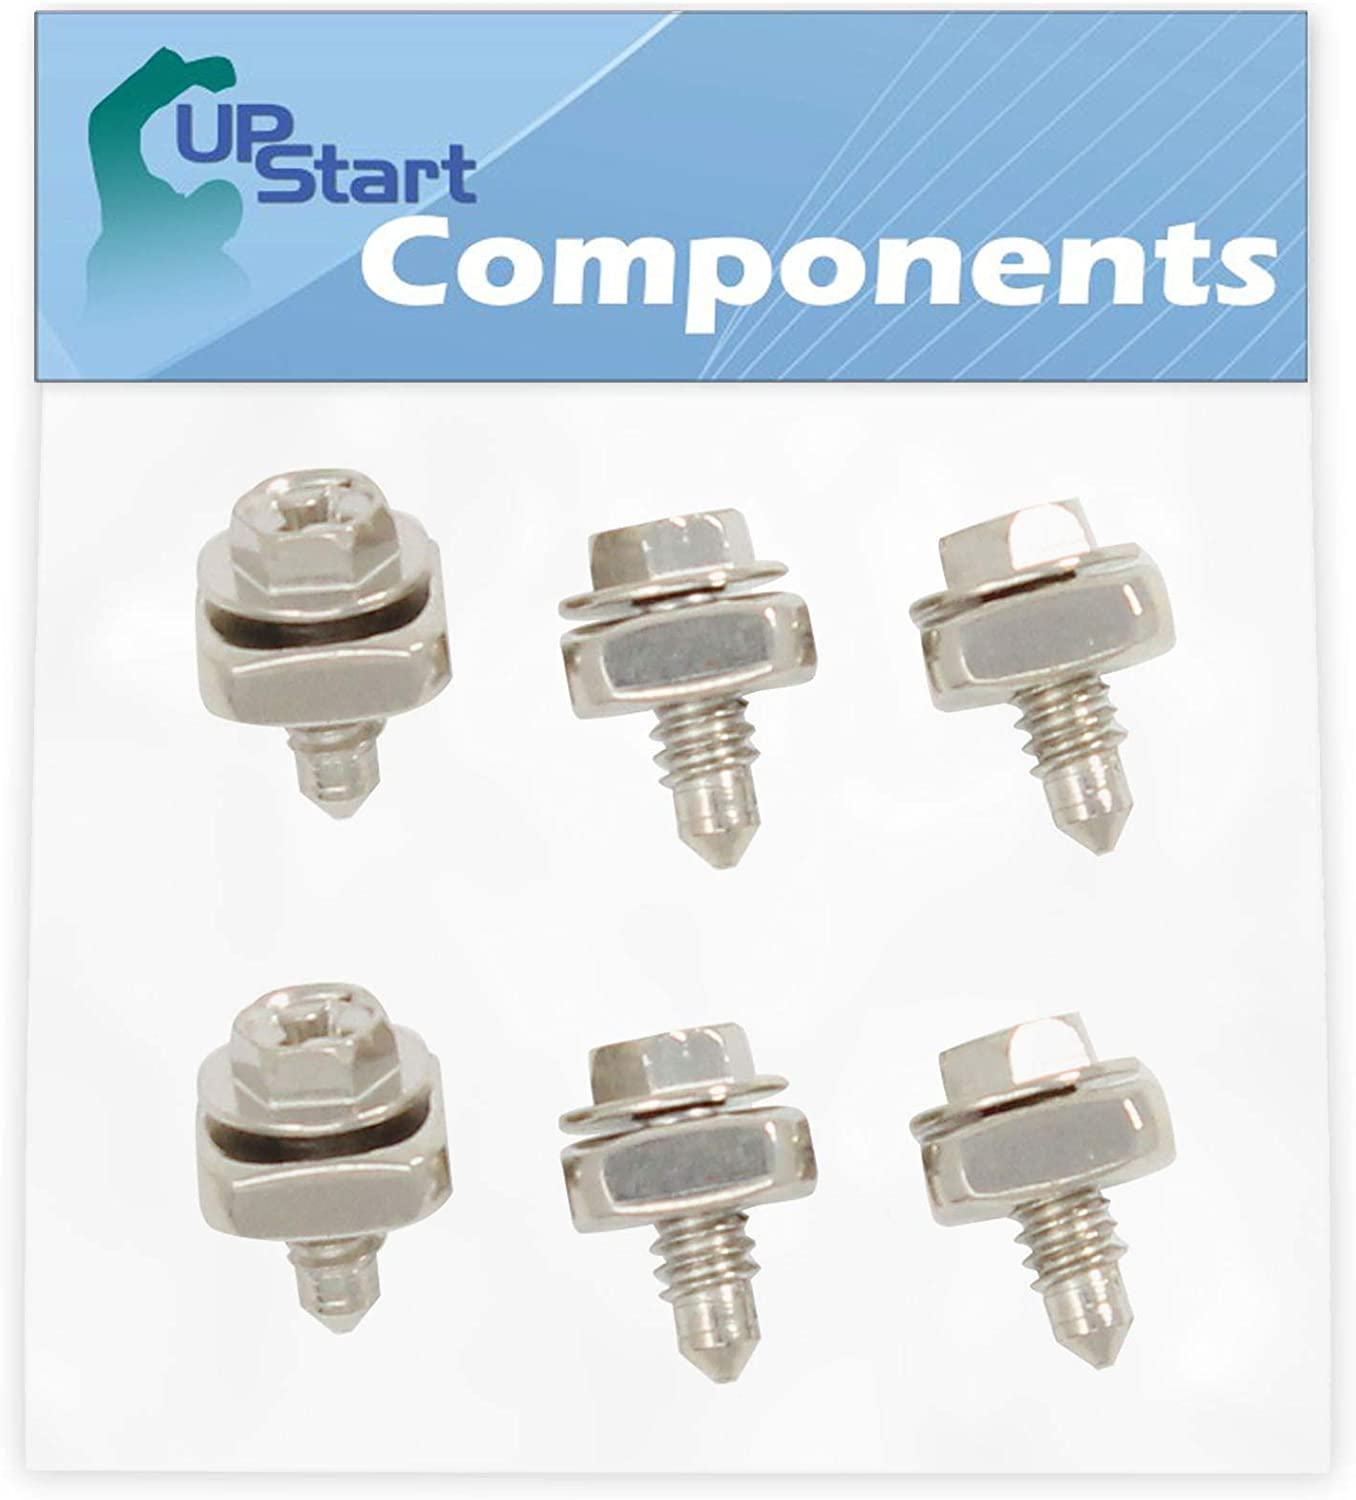 6-Pieces 279393 Dryer Cord Screw Kit Replacement for Kenmore/Sears 110.85089400 Dryer - Compatible with 279393 Terminal Block Screw Kit